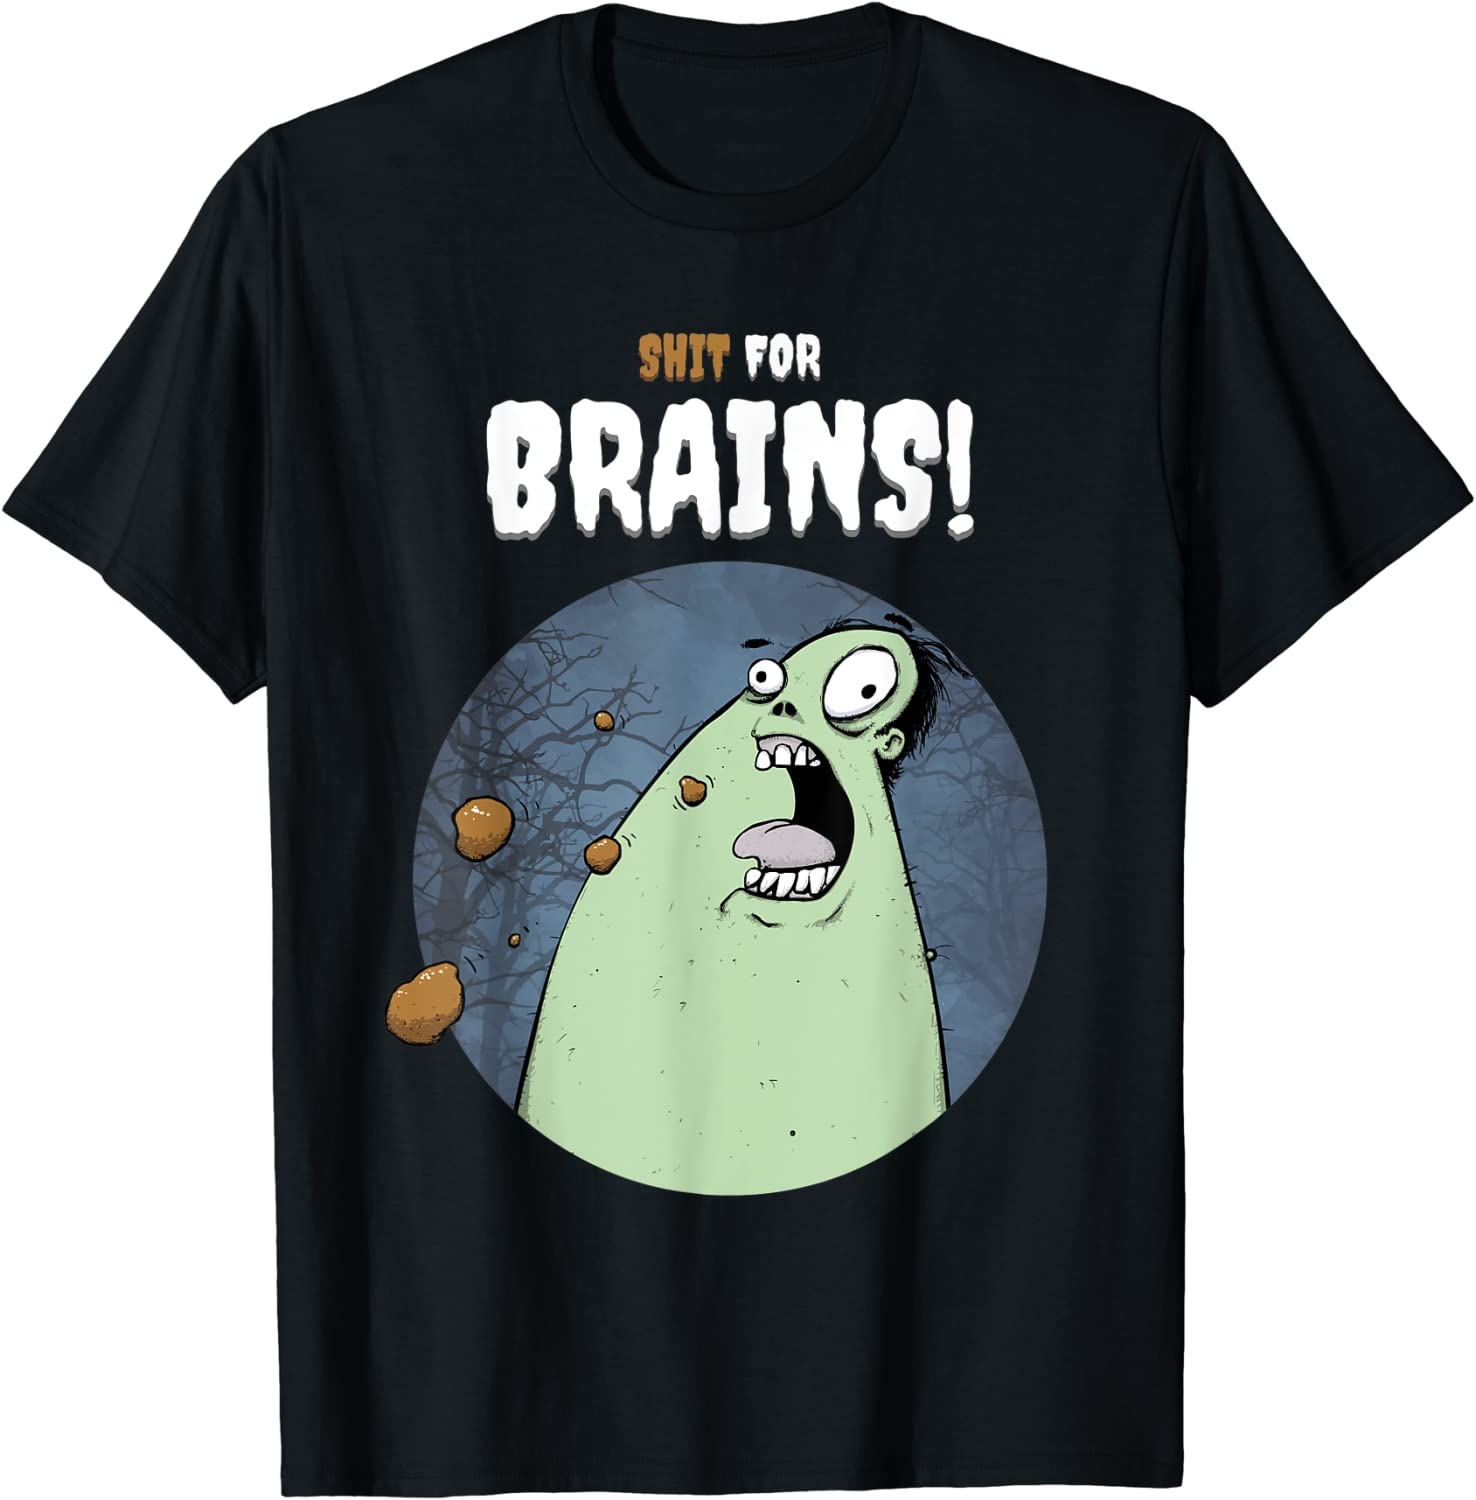 Shit For Brains! Funny Halloween Zombie Costume T-Shirt